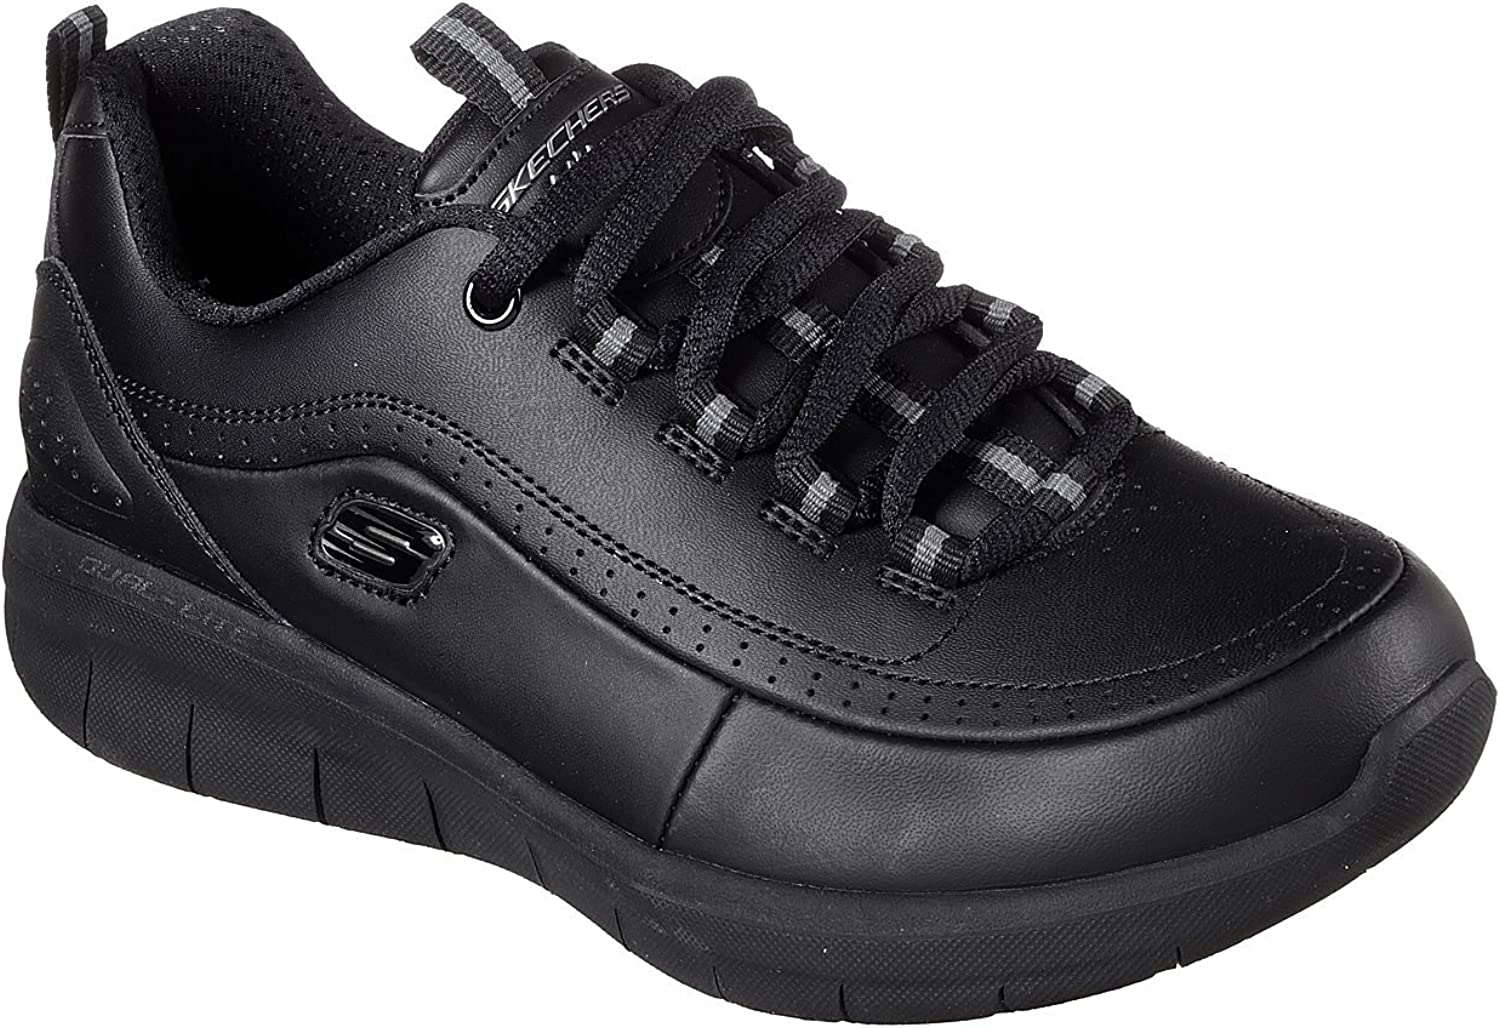 Skechers Synergy 2.0 Chain Reaction Womens Sneakers